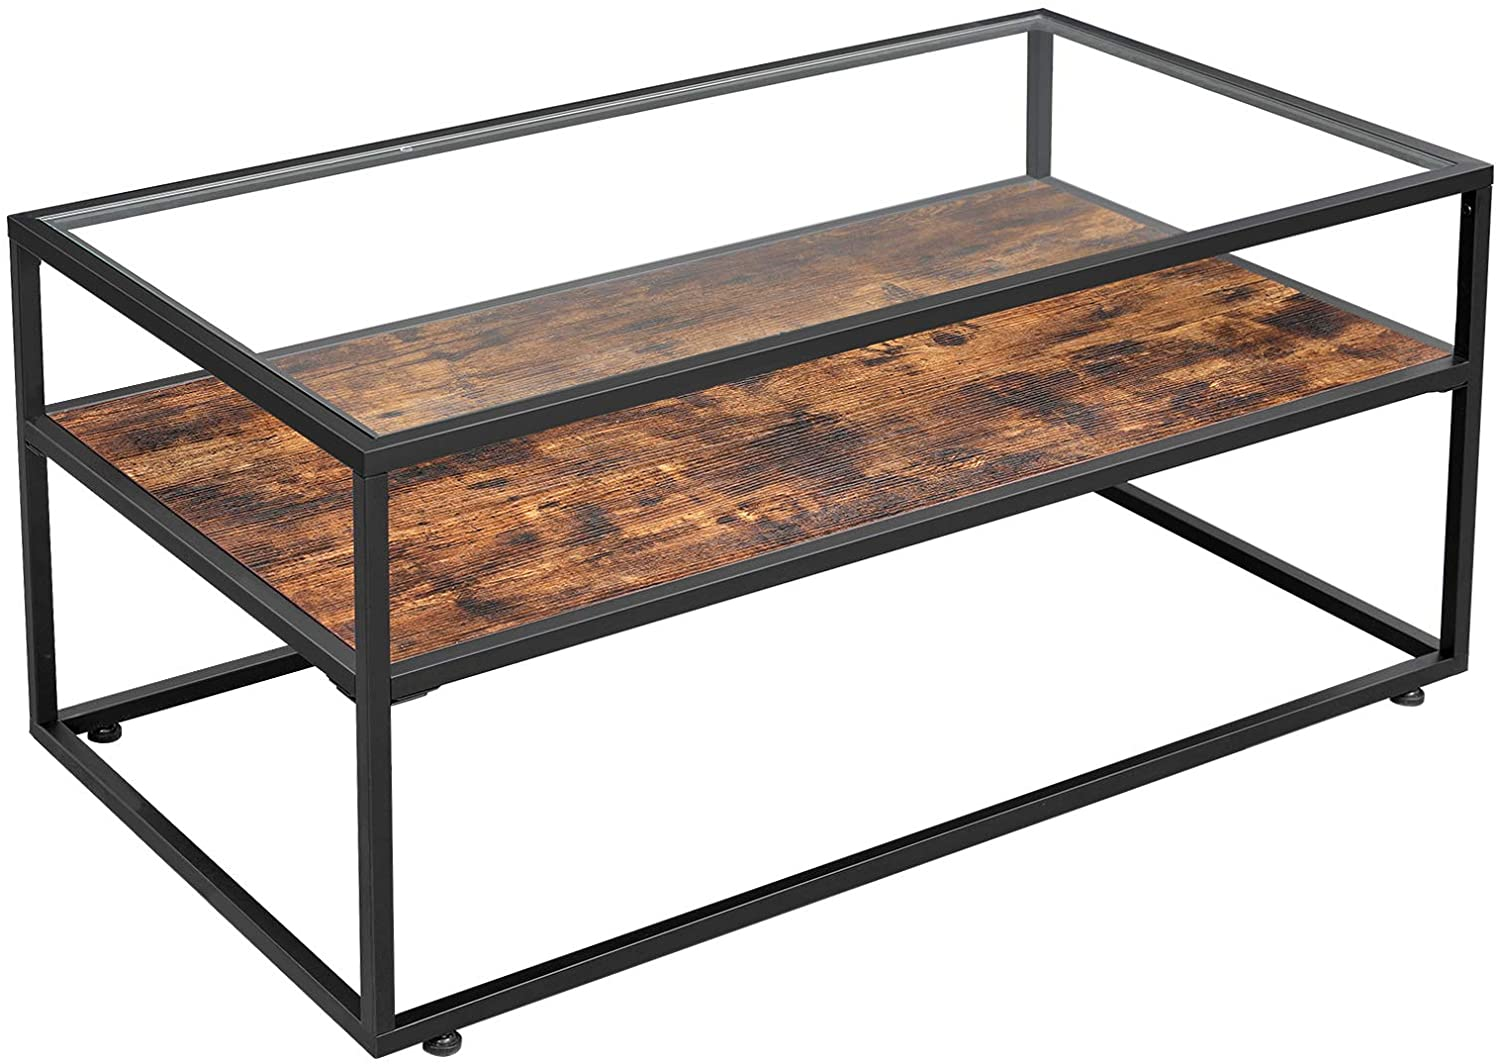 Shop hawkinswoodshop.com for solid wood & metal modern, traditional, contemporary, industrial, custom, rustic, and farmhouse furniture including our Ryan Glass Industrial Farmhouse Coffee Table.  Ask about our free nationwide delivery service.